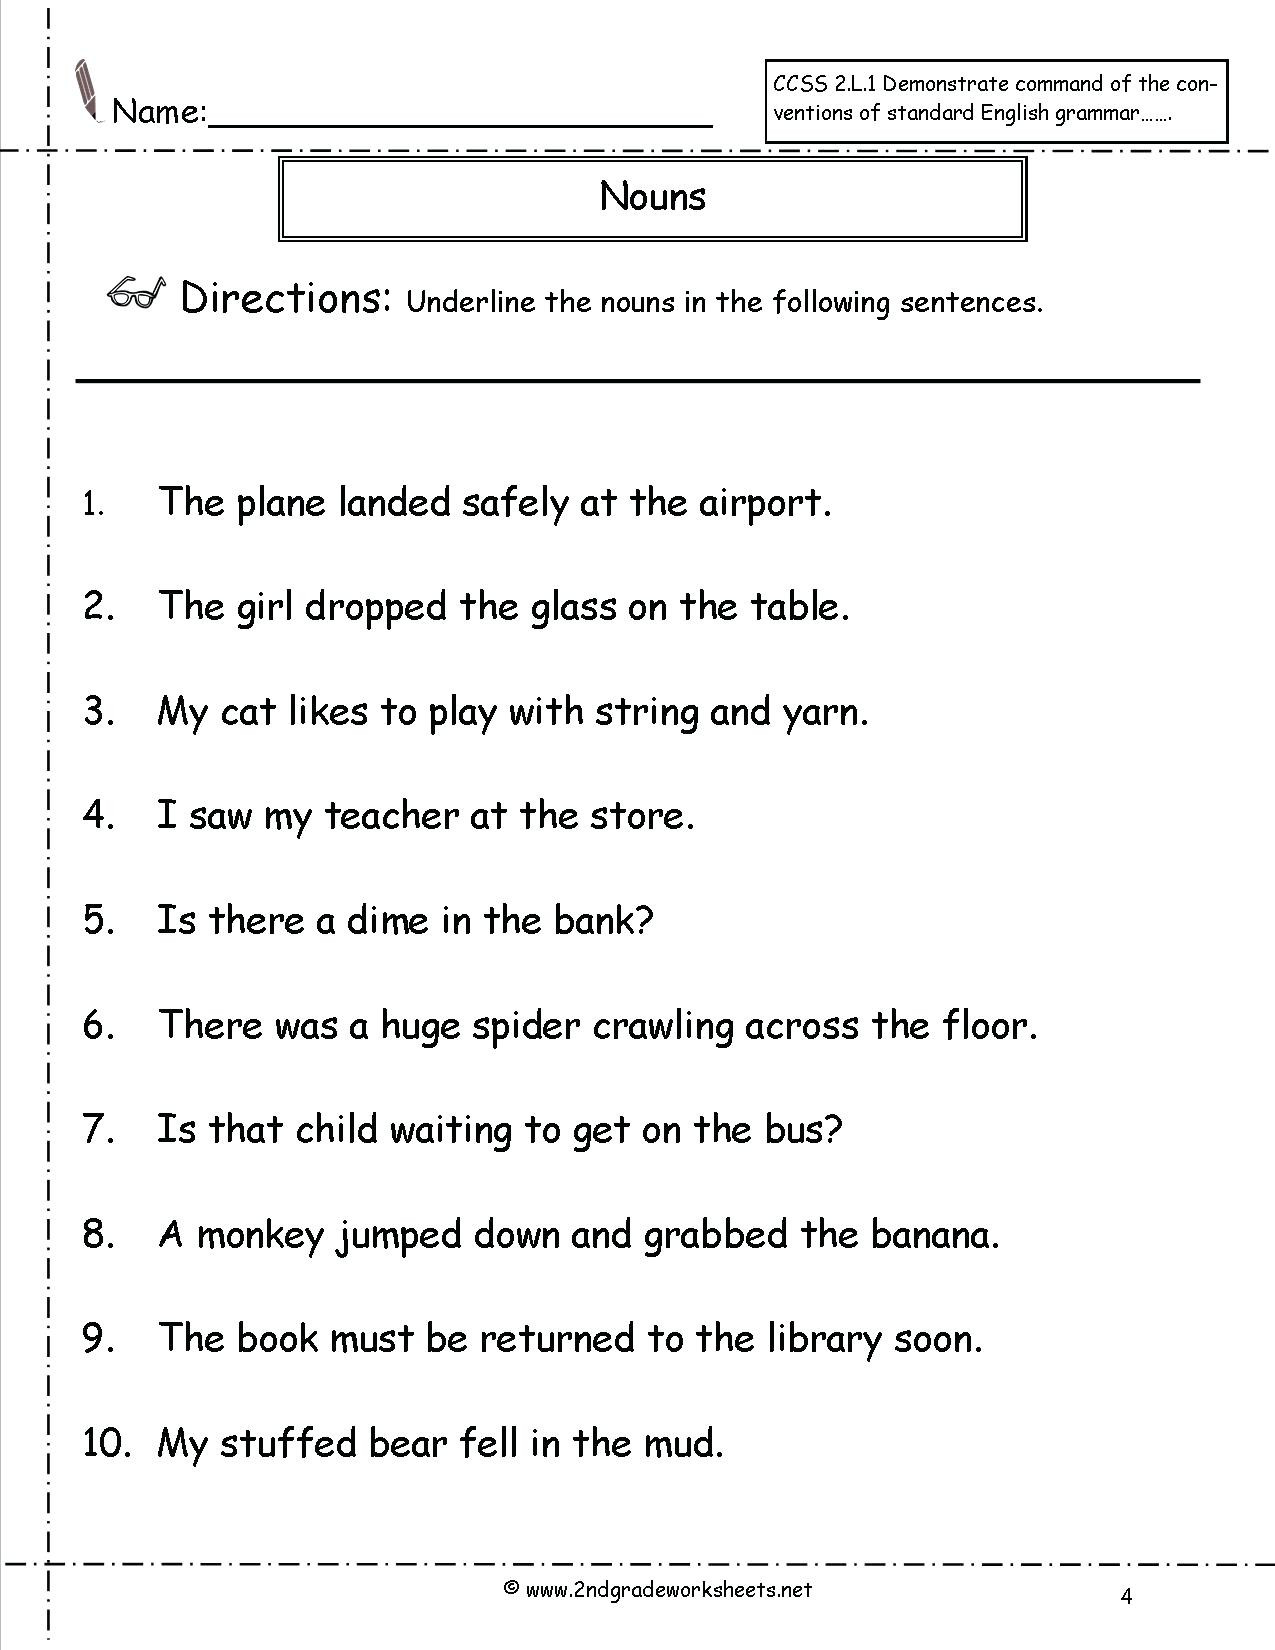 Grammar Worksheets Middle School Pdf Noun Worksheet Nouns Worksheet Grammar Worksheets for Grade